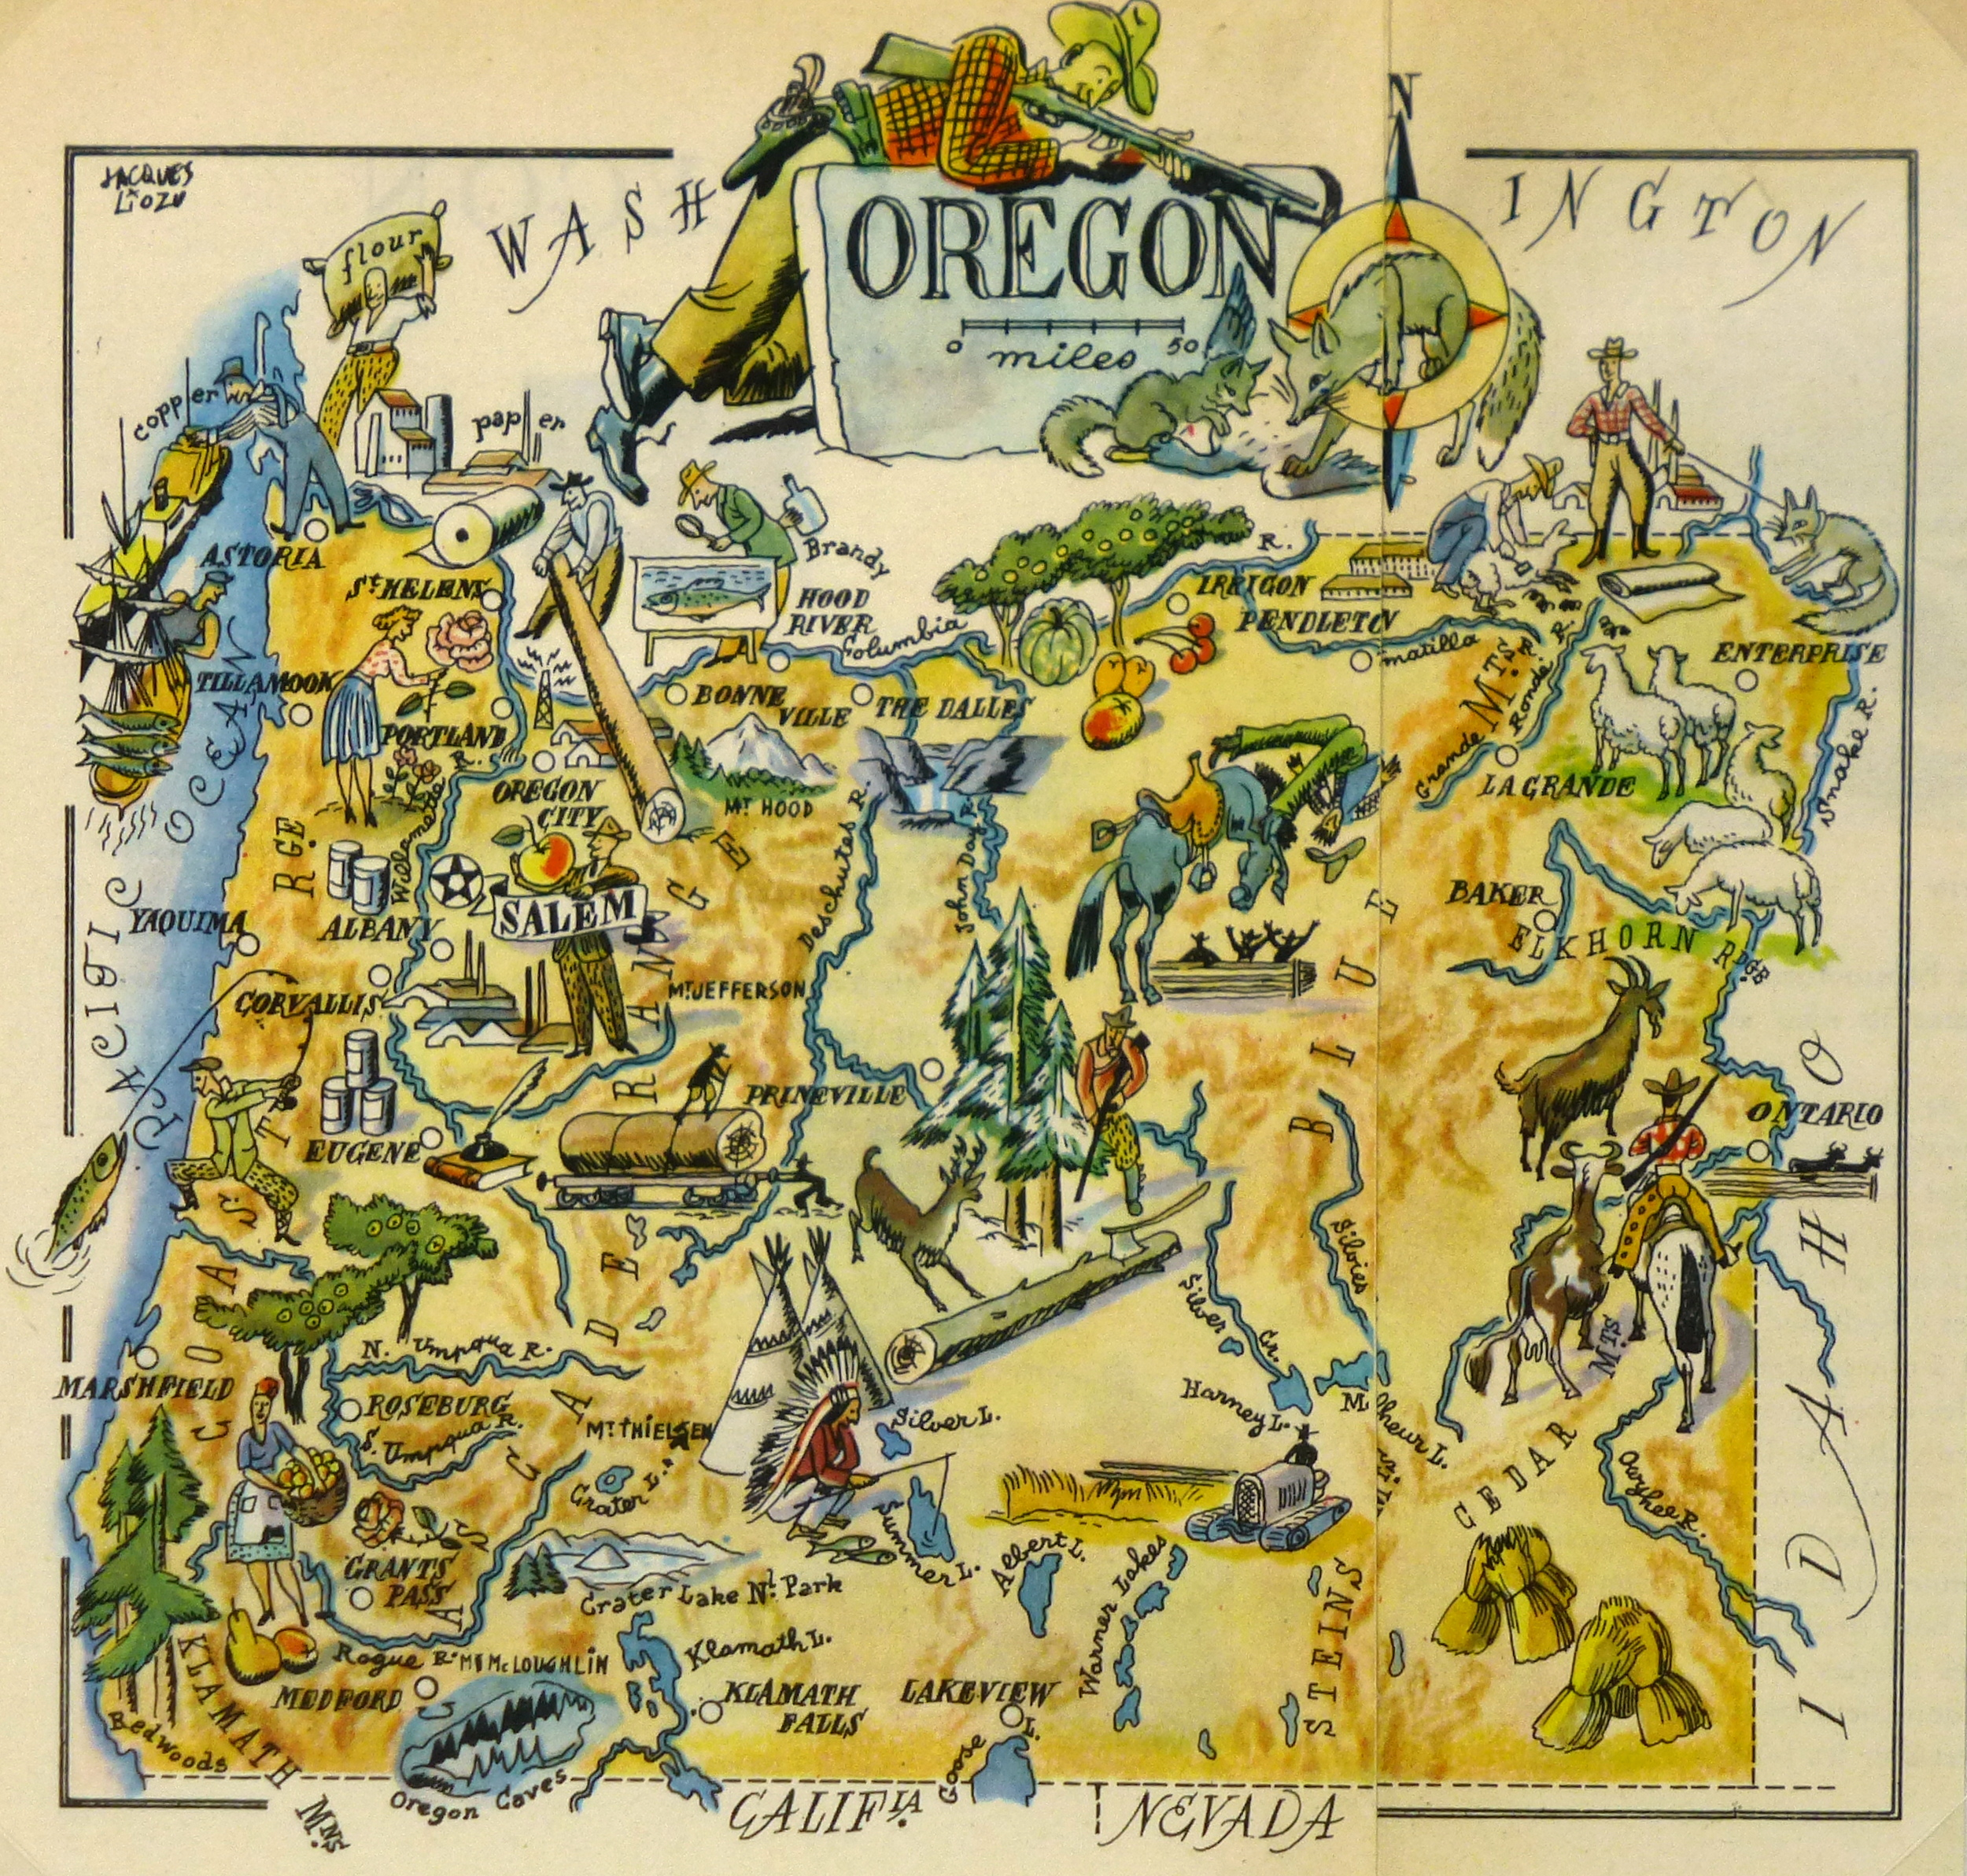 Oregon Pictorial Map, 1946-main-6281K